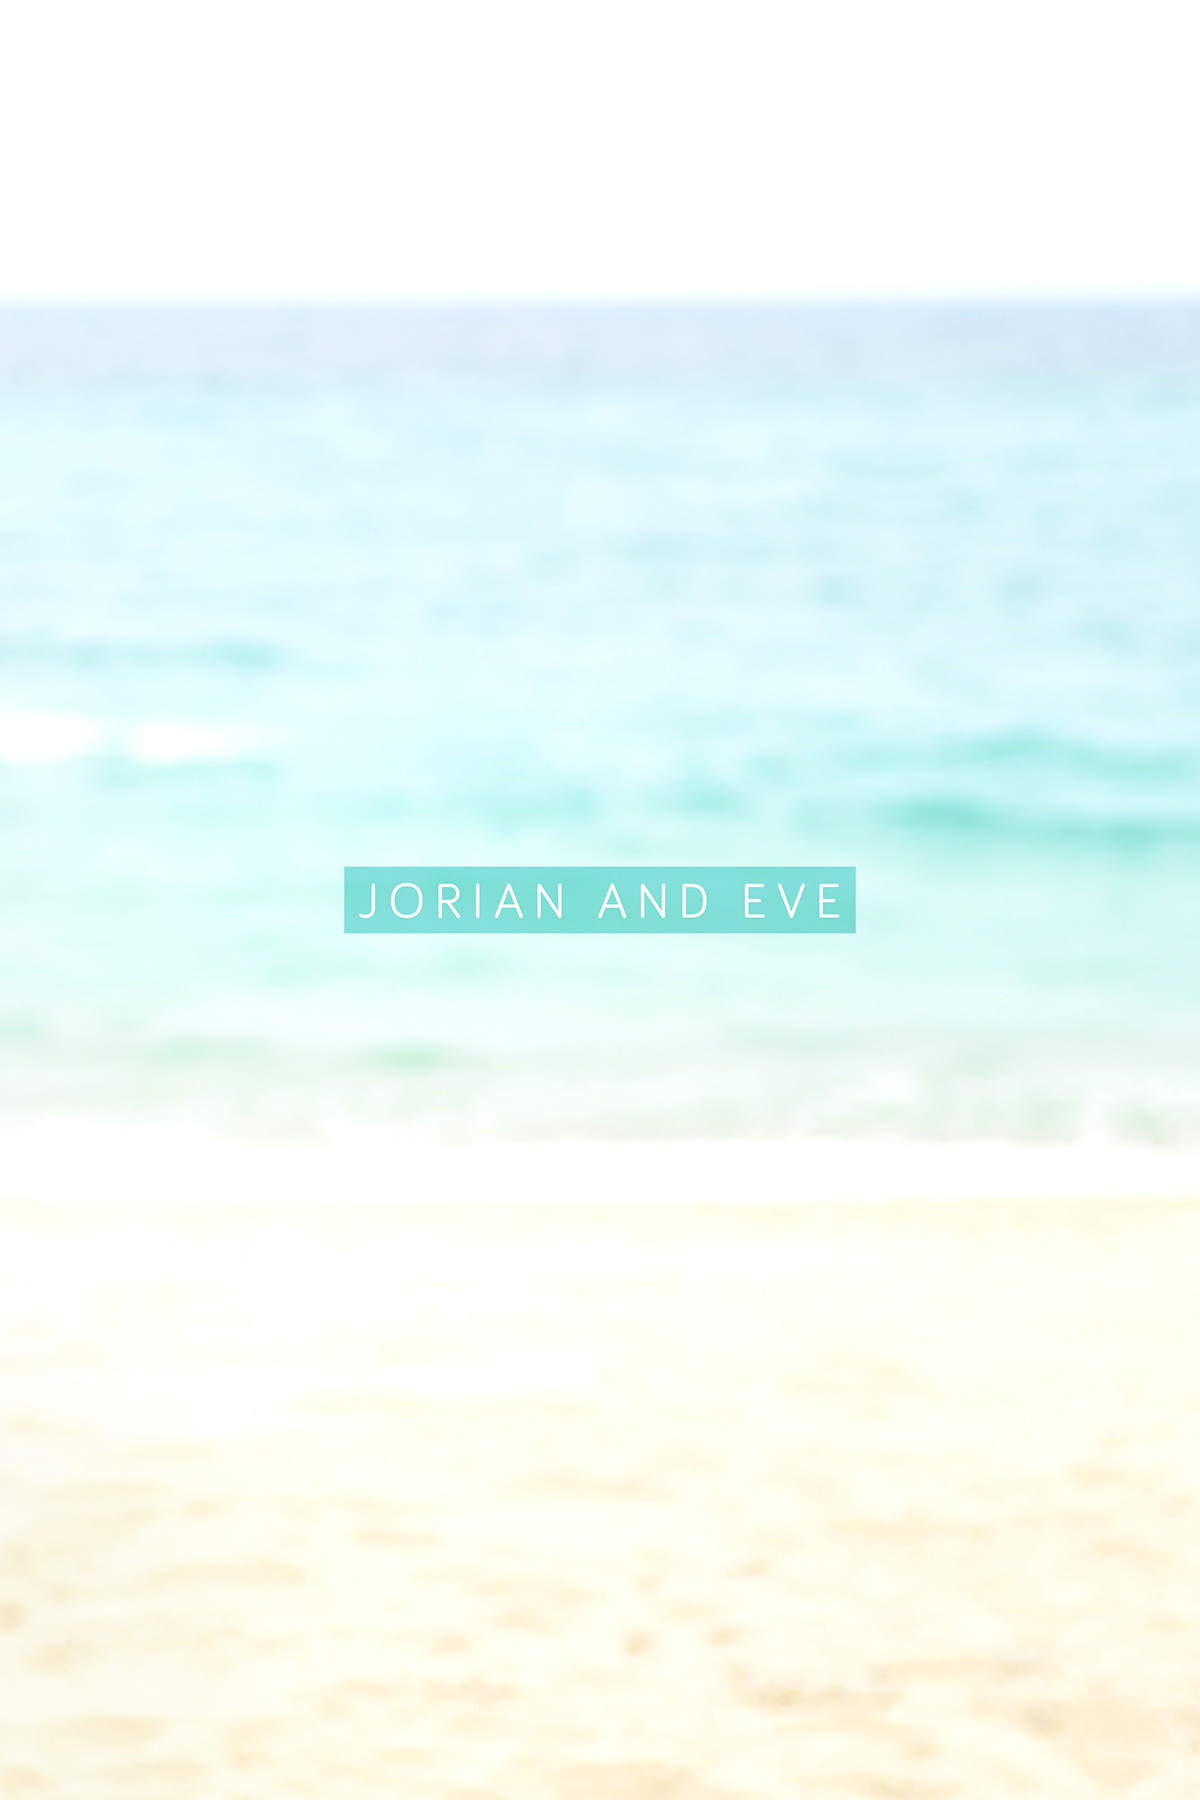 wedding-album_jorian-eve_spreads-1